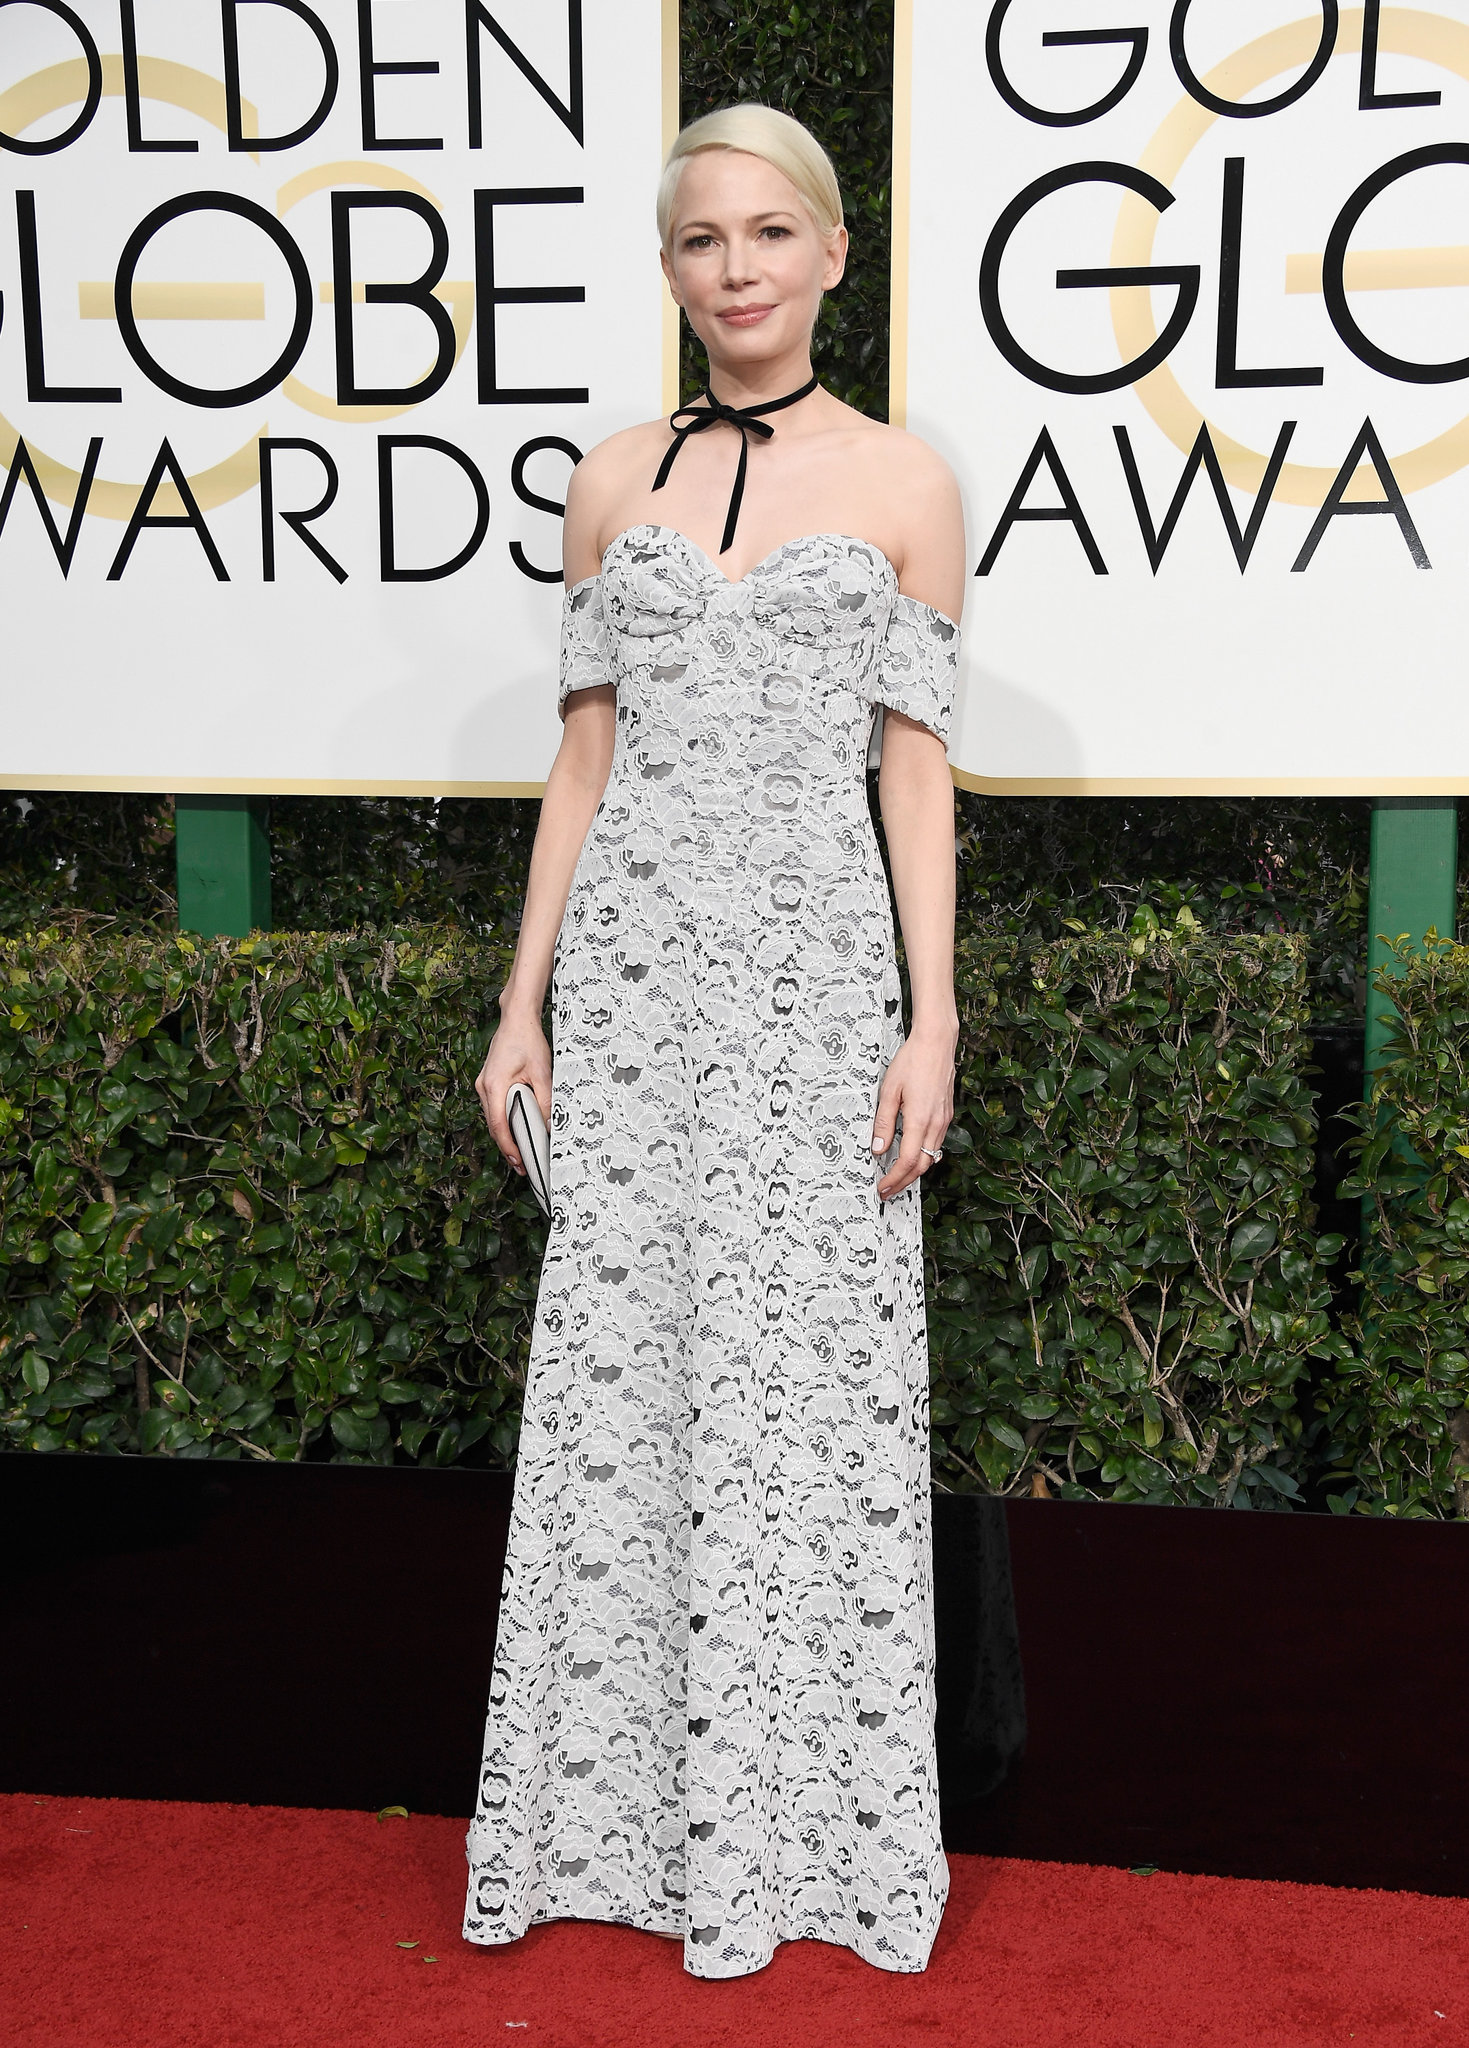 Michelle WIlliams wearing Louis Vuitton